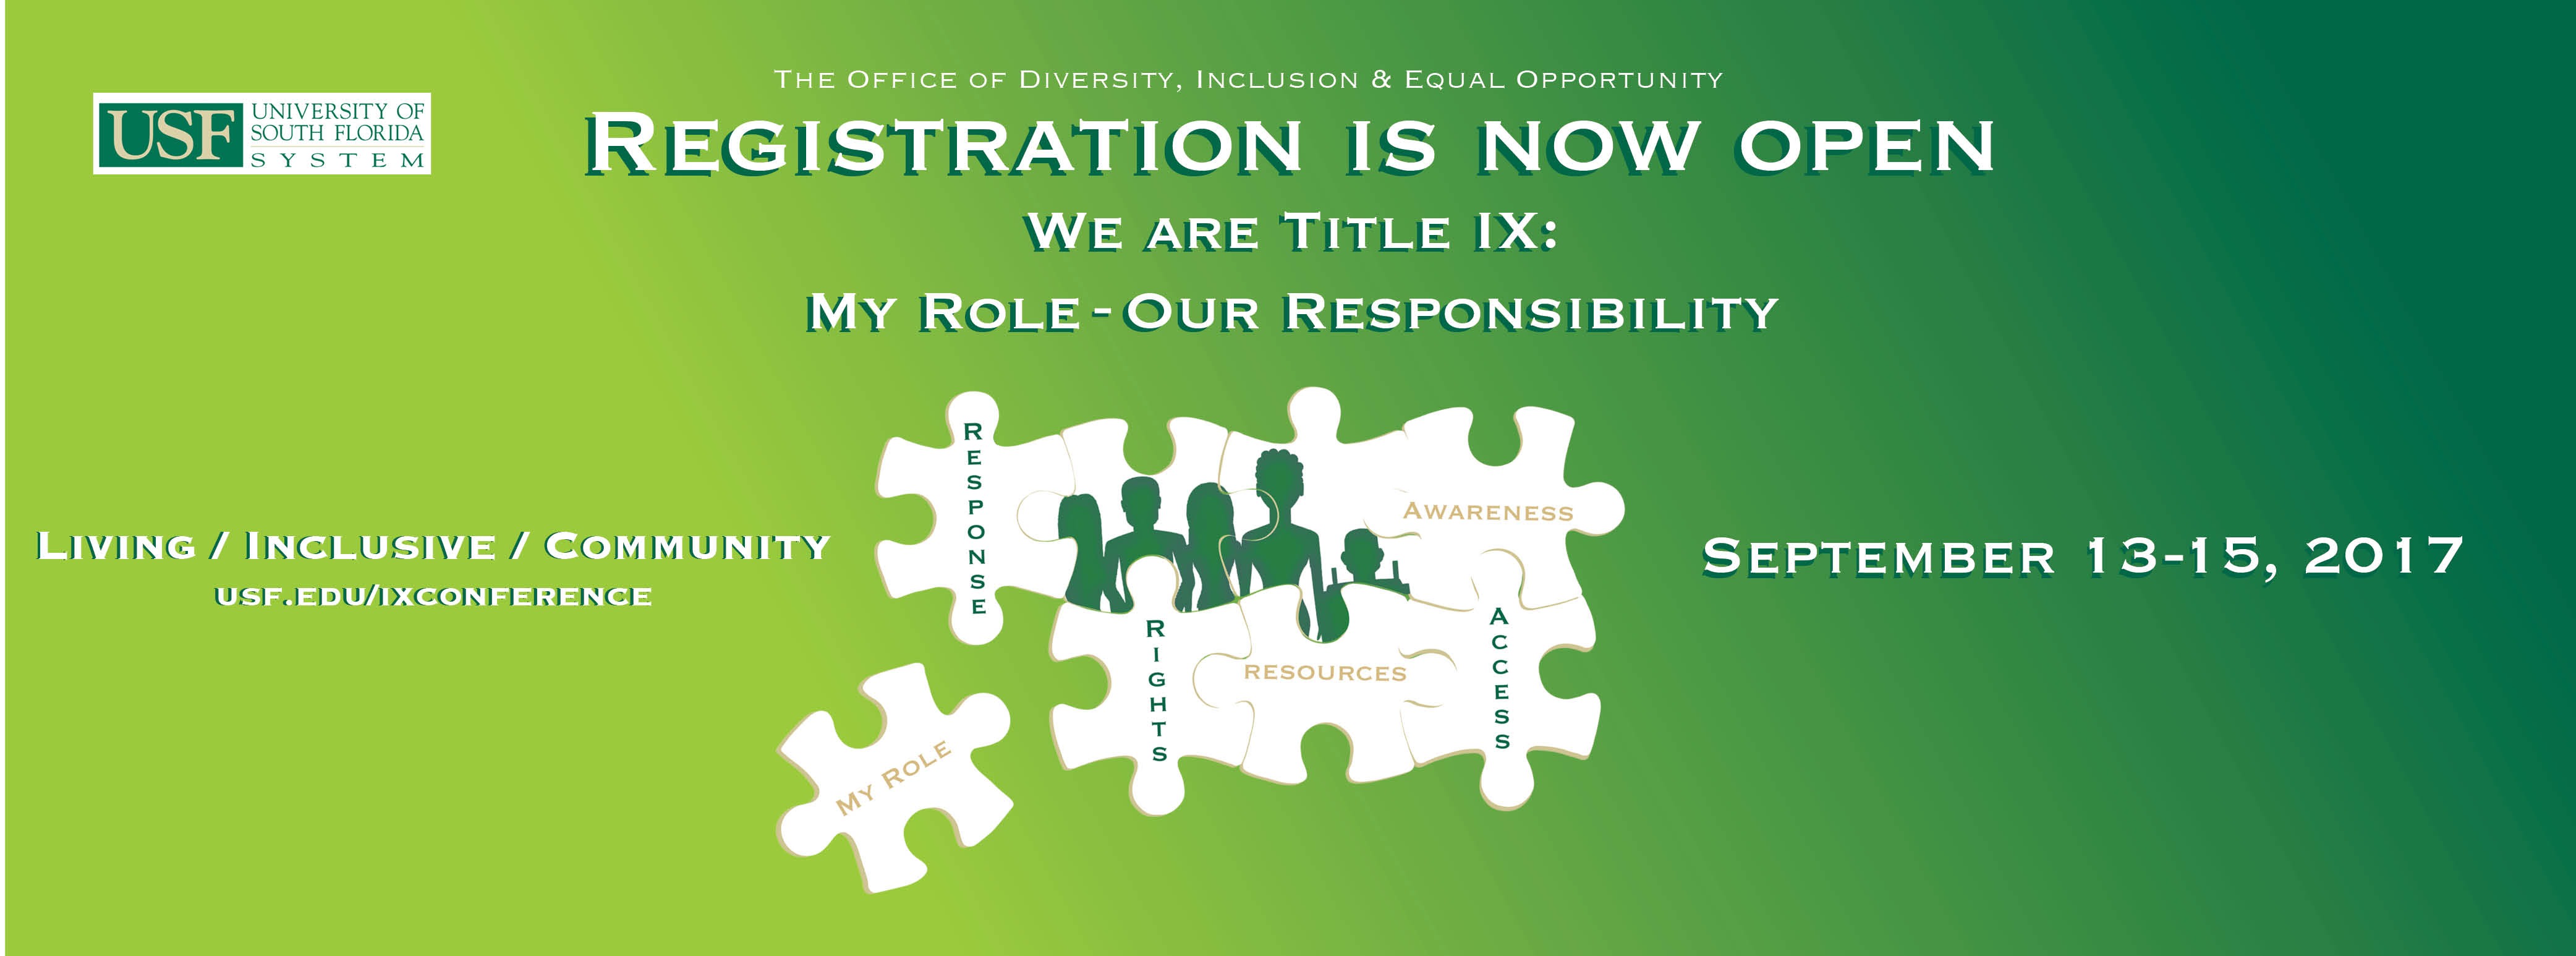 2017 Title IX Conference Registration Is Now Open. We Are Title IX: My Role-Our Responsibility. September 13-15, 2017.